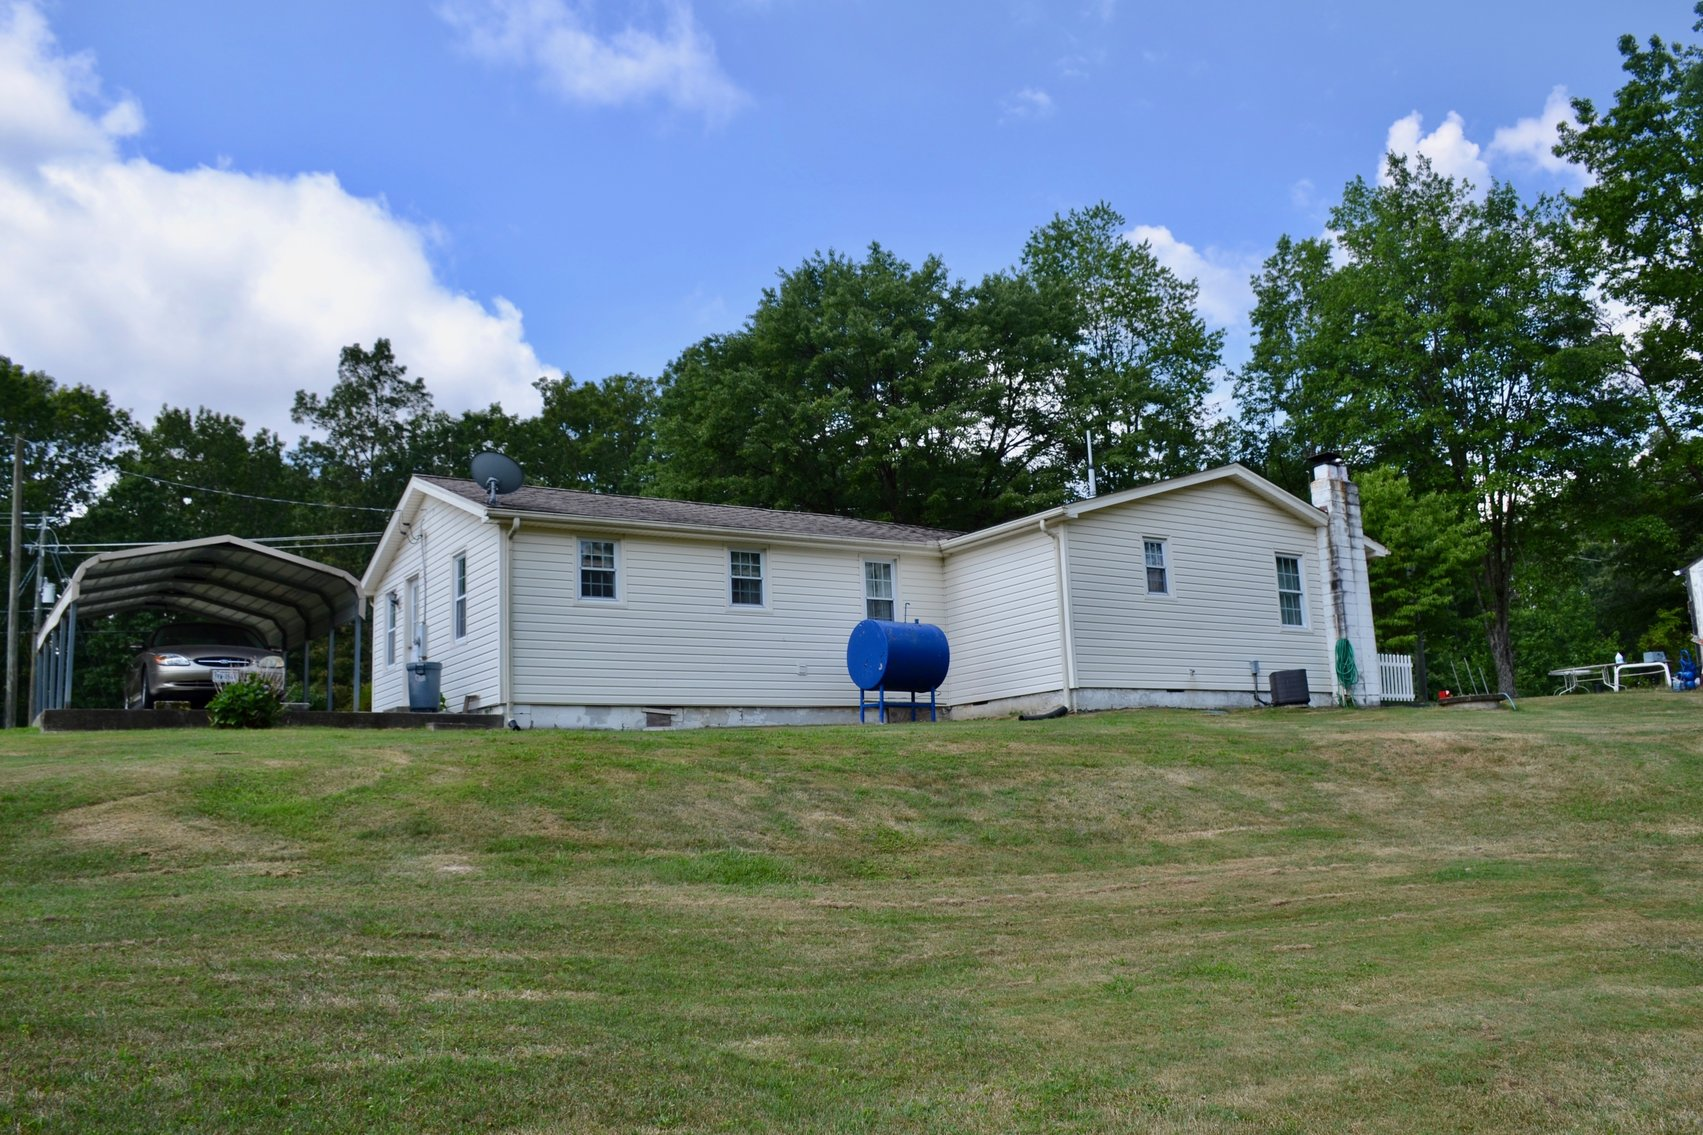 Image for 3 BR/1.5 BA Home on .8 +/- Acres Located Just off Rt. 1 in Stafford County, VA